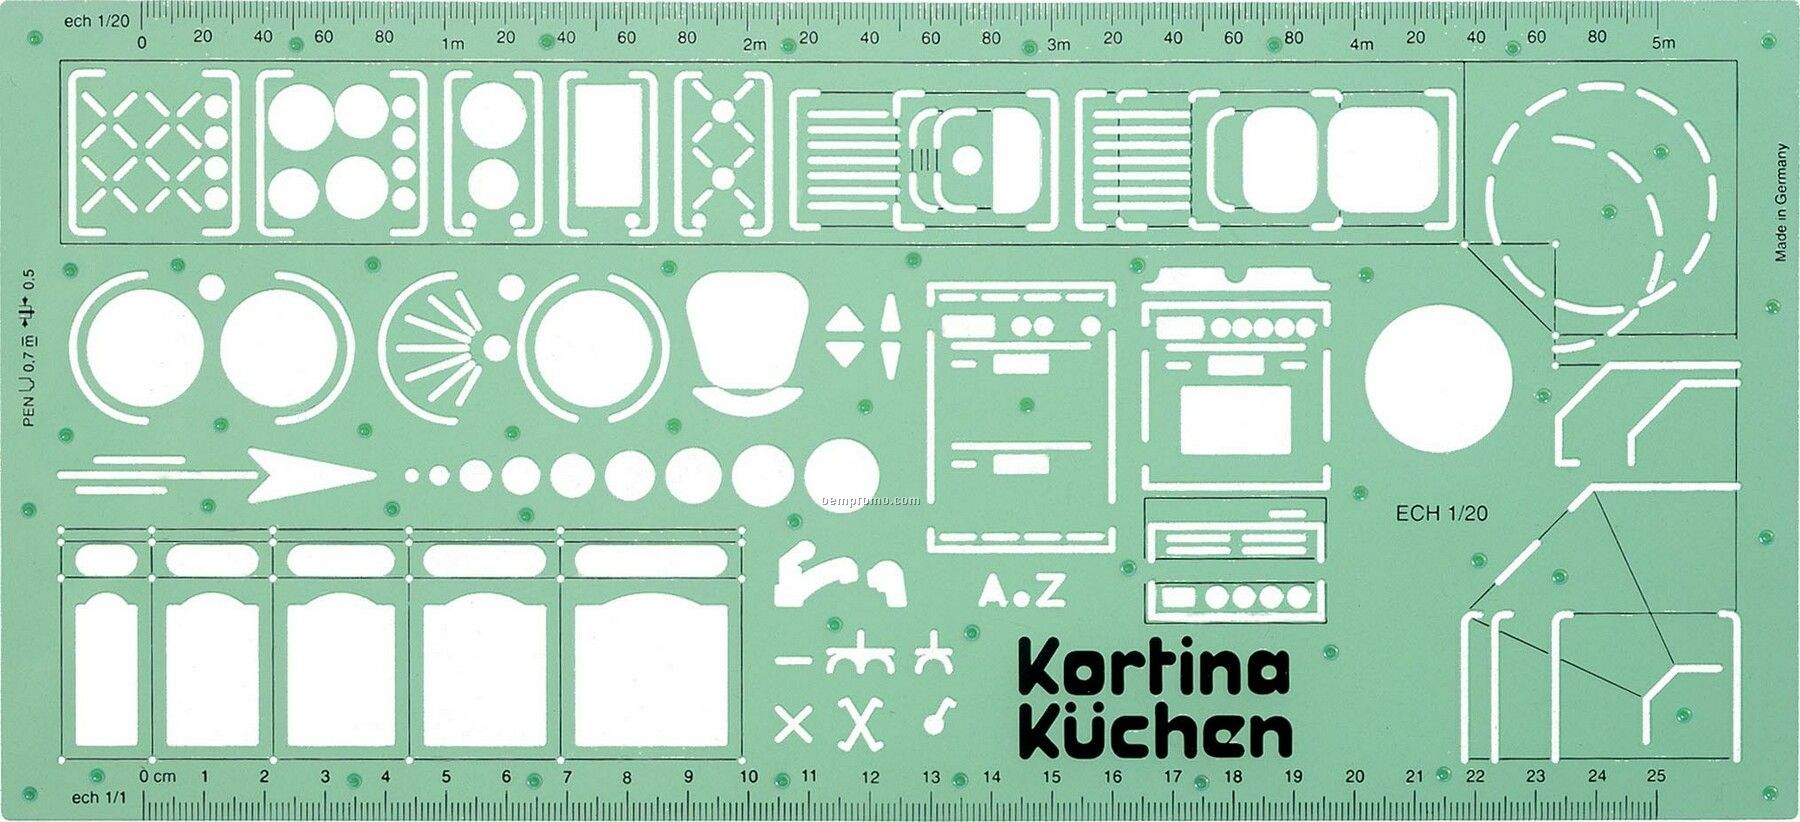 Sjablonen Keuken Kitchen Stencil M 1 20 30 Cm 12 39 39 China Wholesale